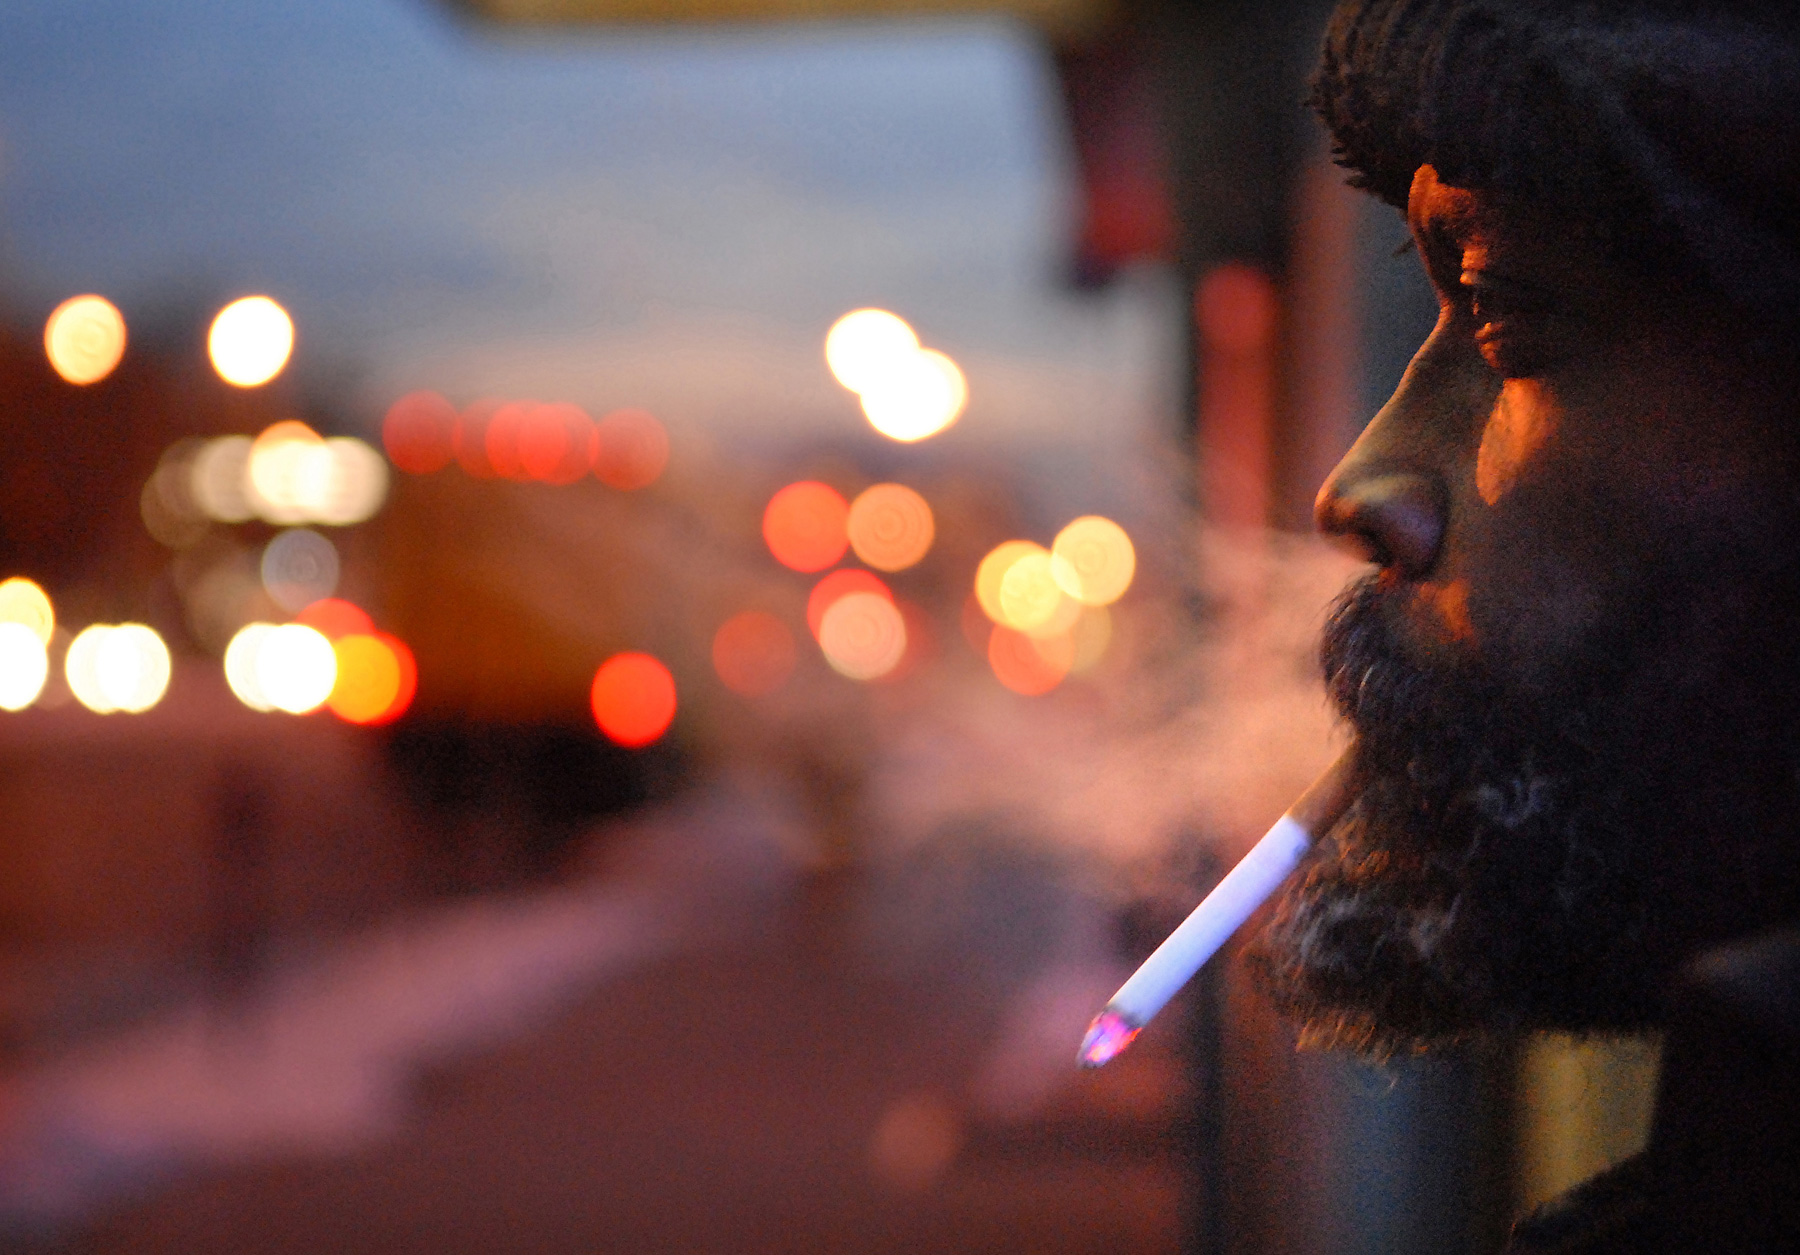 JoshuaBright_RiverdalePress_Kenny_Homeless_Broadway_smoking